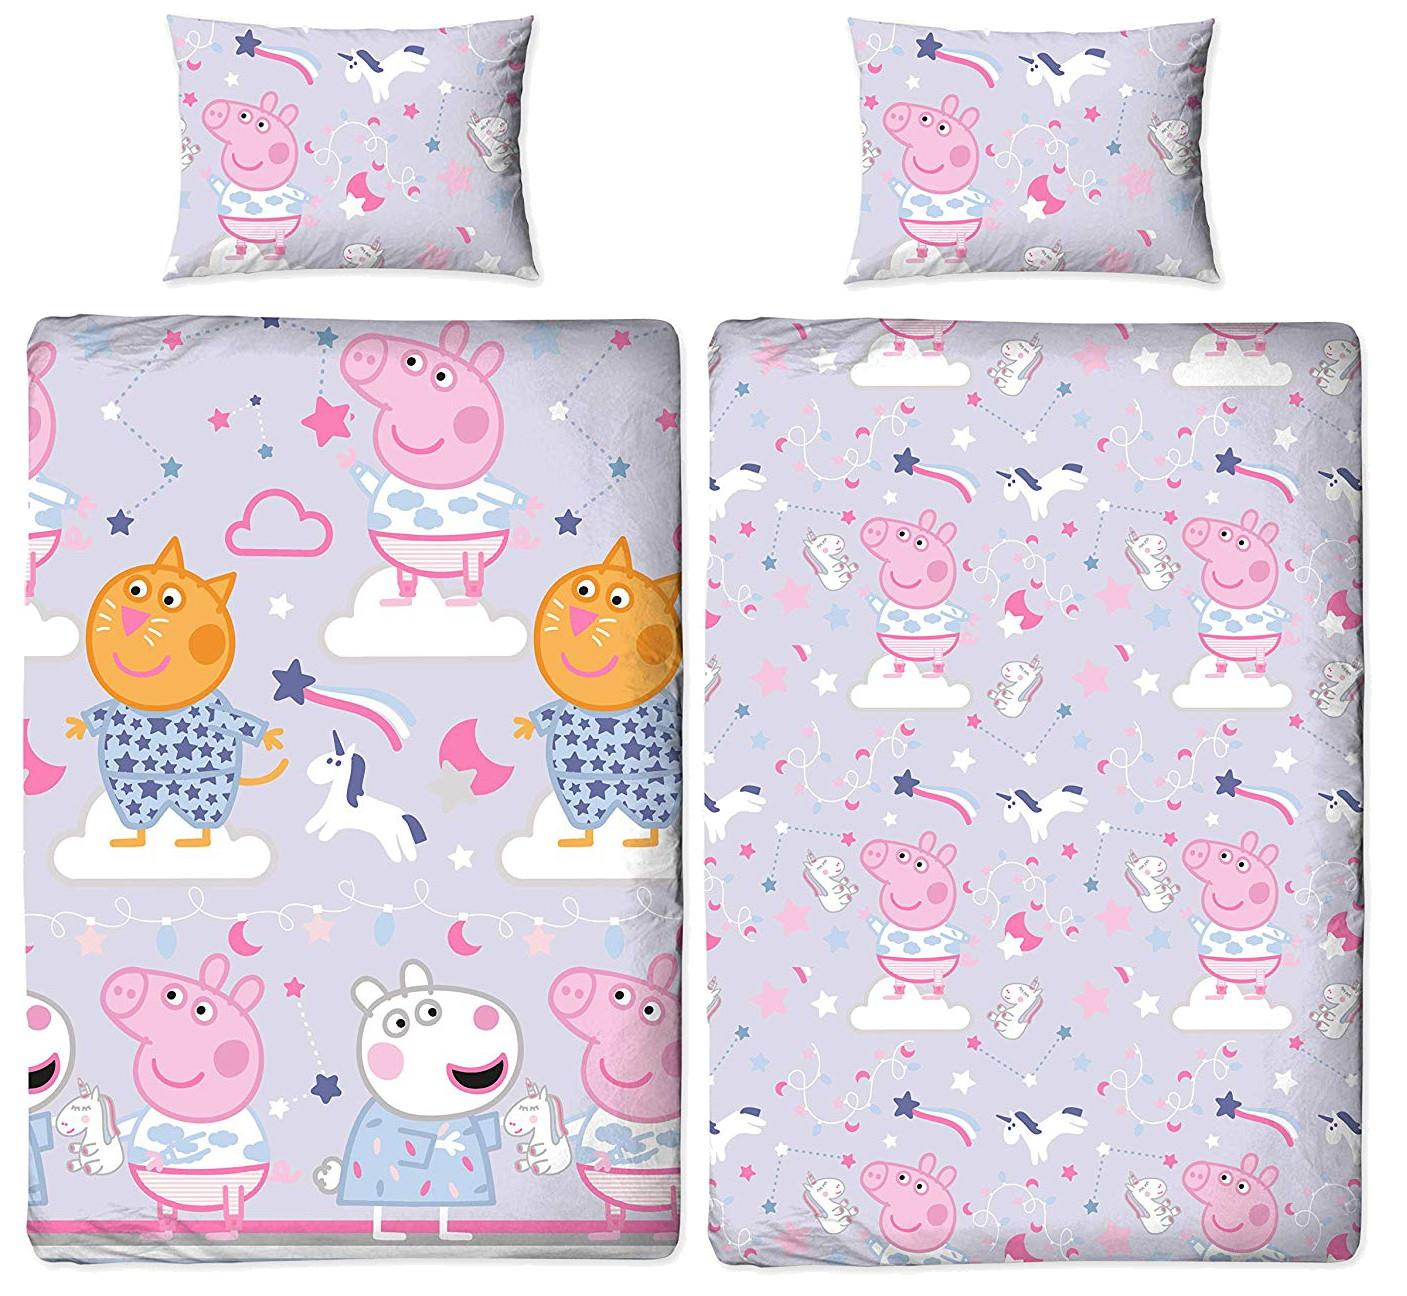 Oficial-Peppa-Pig-George-fundas-nordicas-SINGLE-doble-Ropa-De-Cama-Reversible miniatura 35